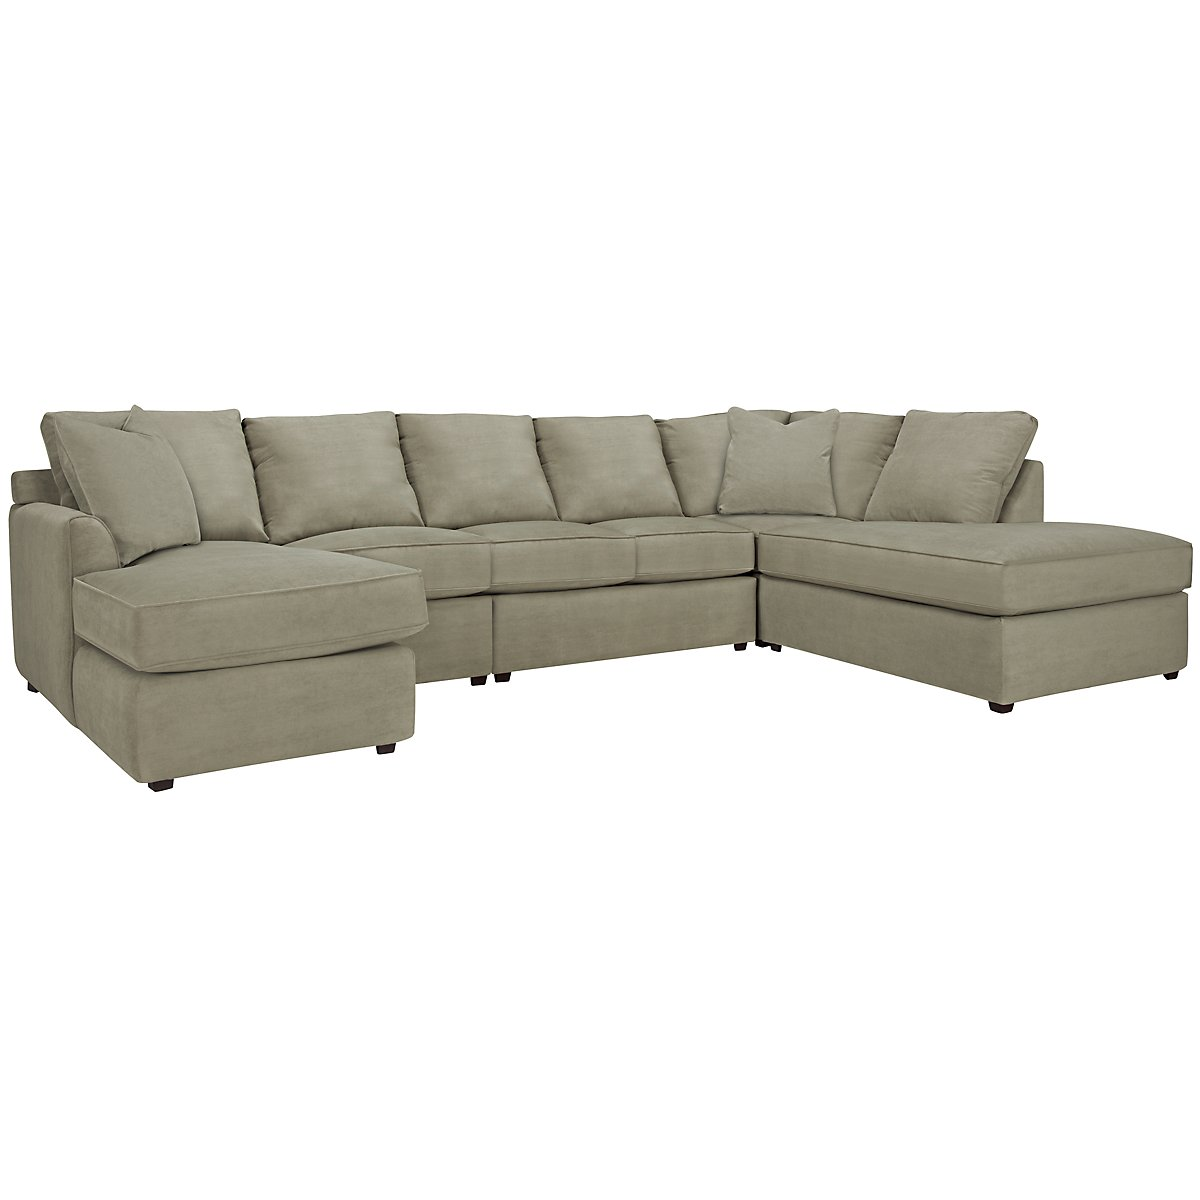 Express3 Light Green Microfiber Large Right Bumper Sectional